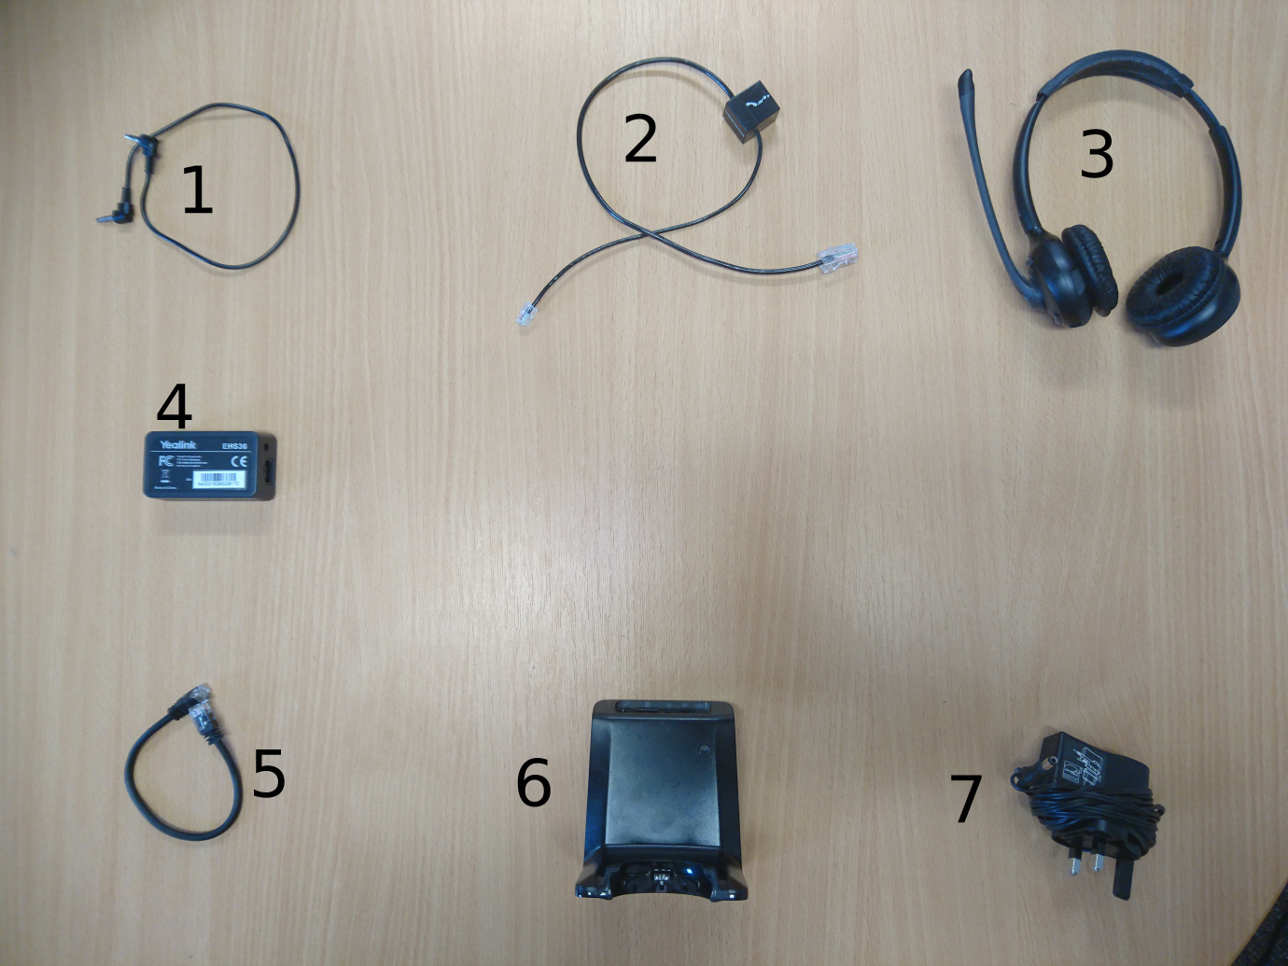 How to configure Yealink T46G with Plantronics CS520 and EHS36